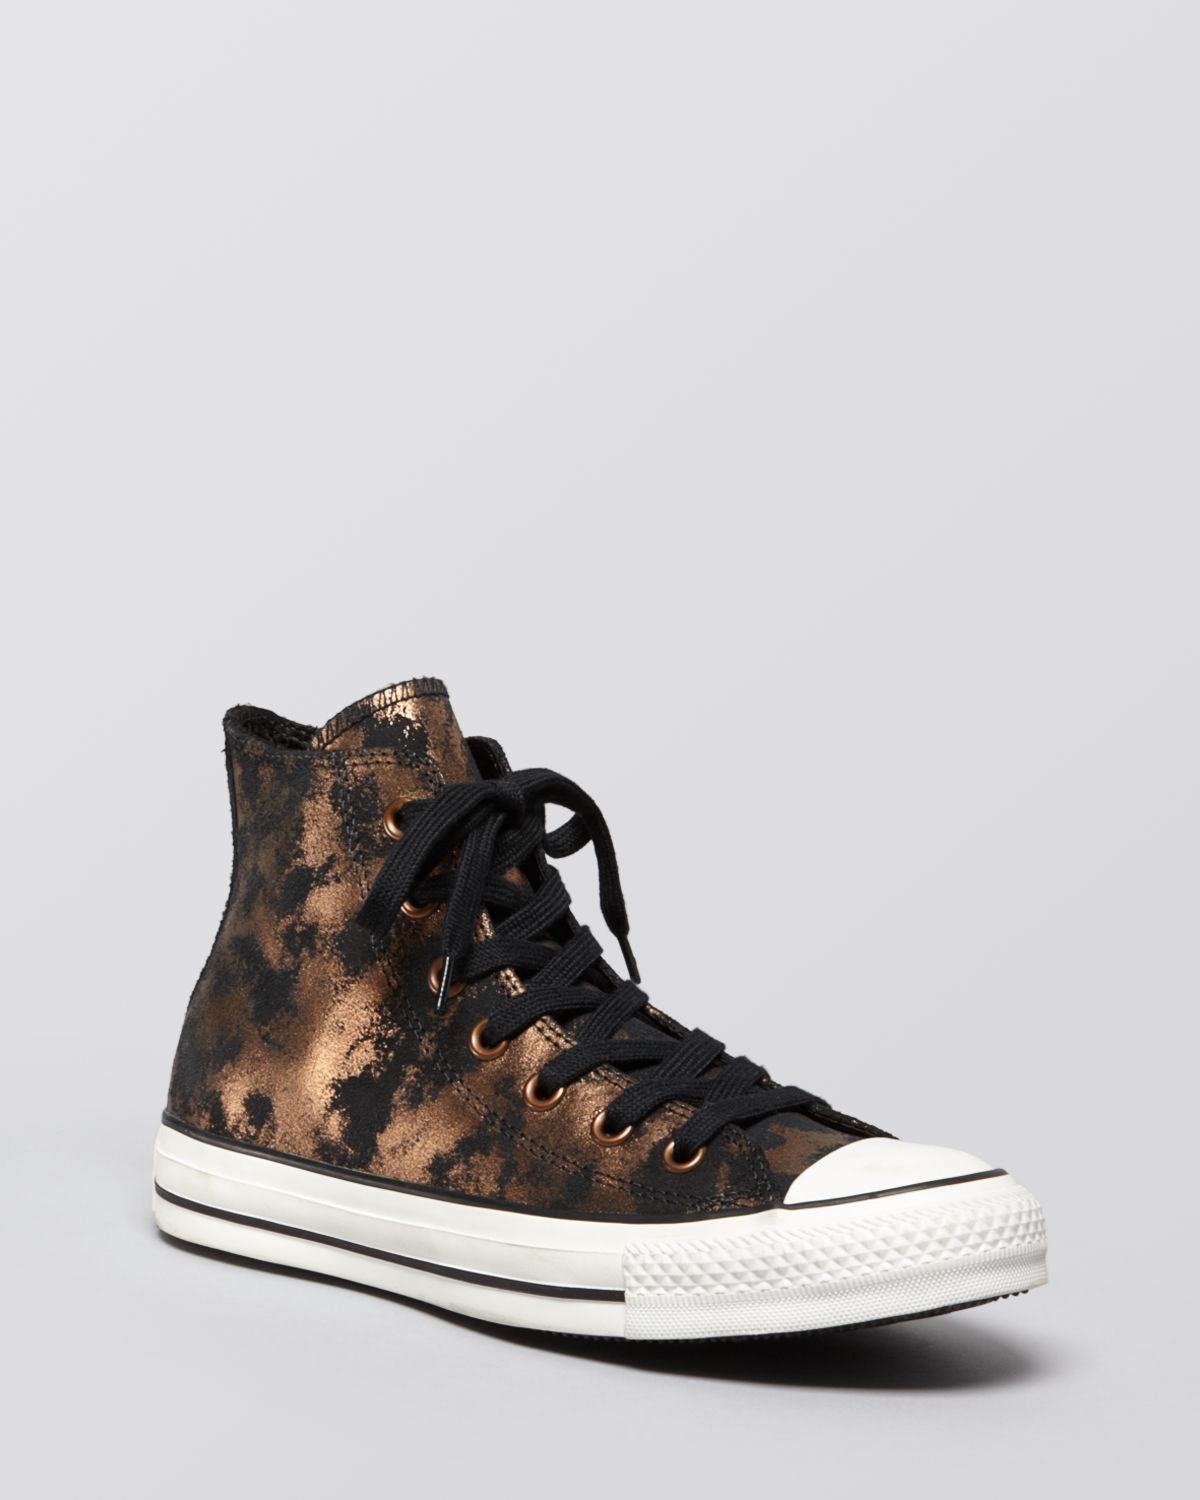 fc41f01951a9 Lyst - Converse Lace Up High Top Sneakers All Star Metallic in Black